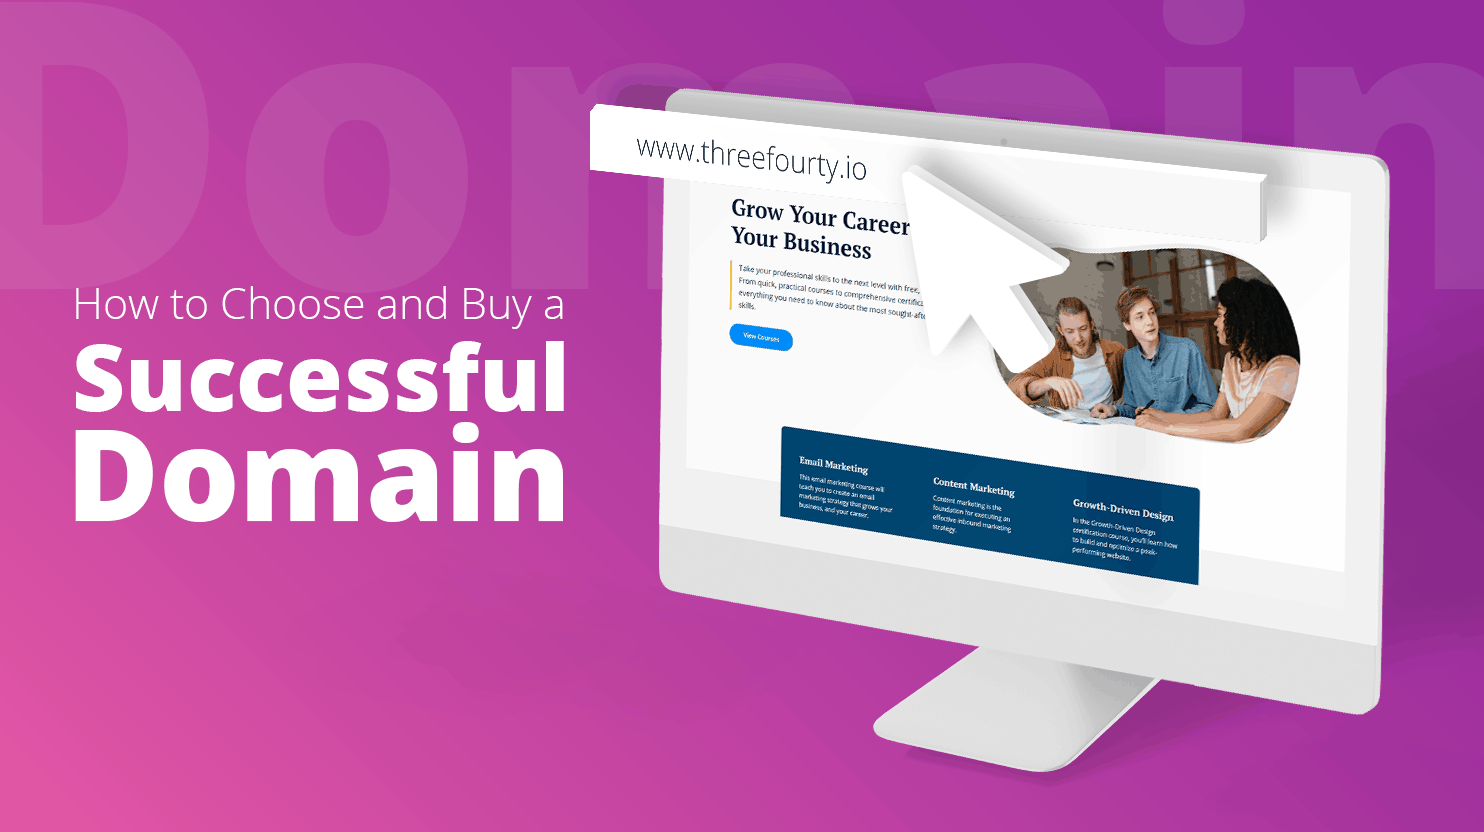 How to Choose and Buy a Successful Domain - 10Web